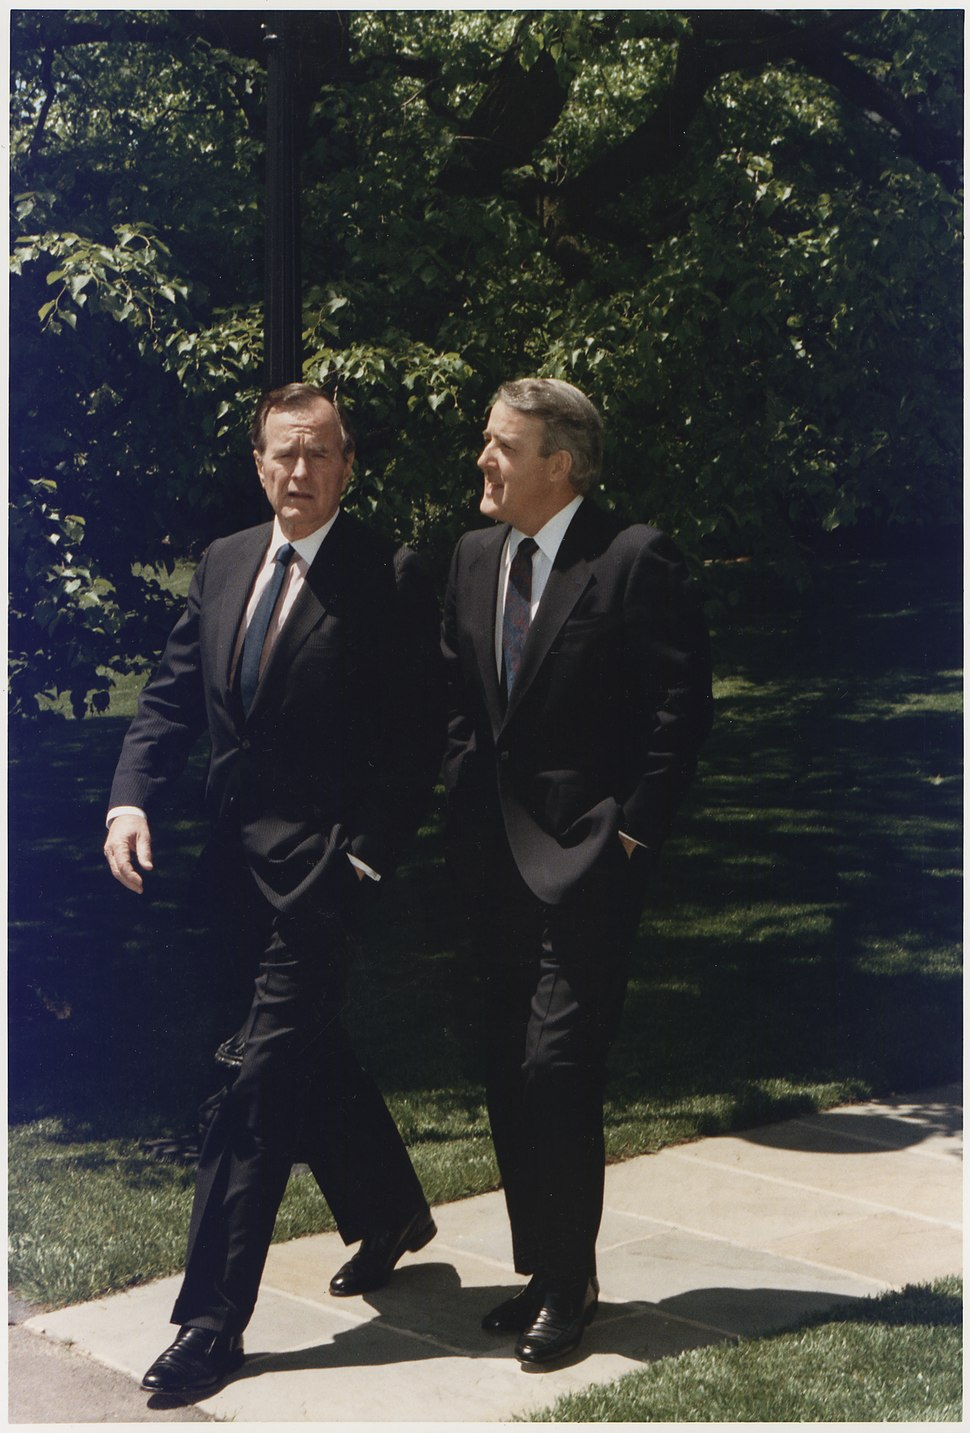 President Bush walks with Prime Minister Mulroney of Canada on the White House Grounds - NARA - 186392